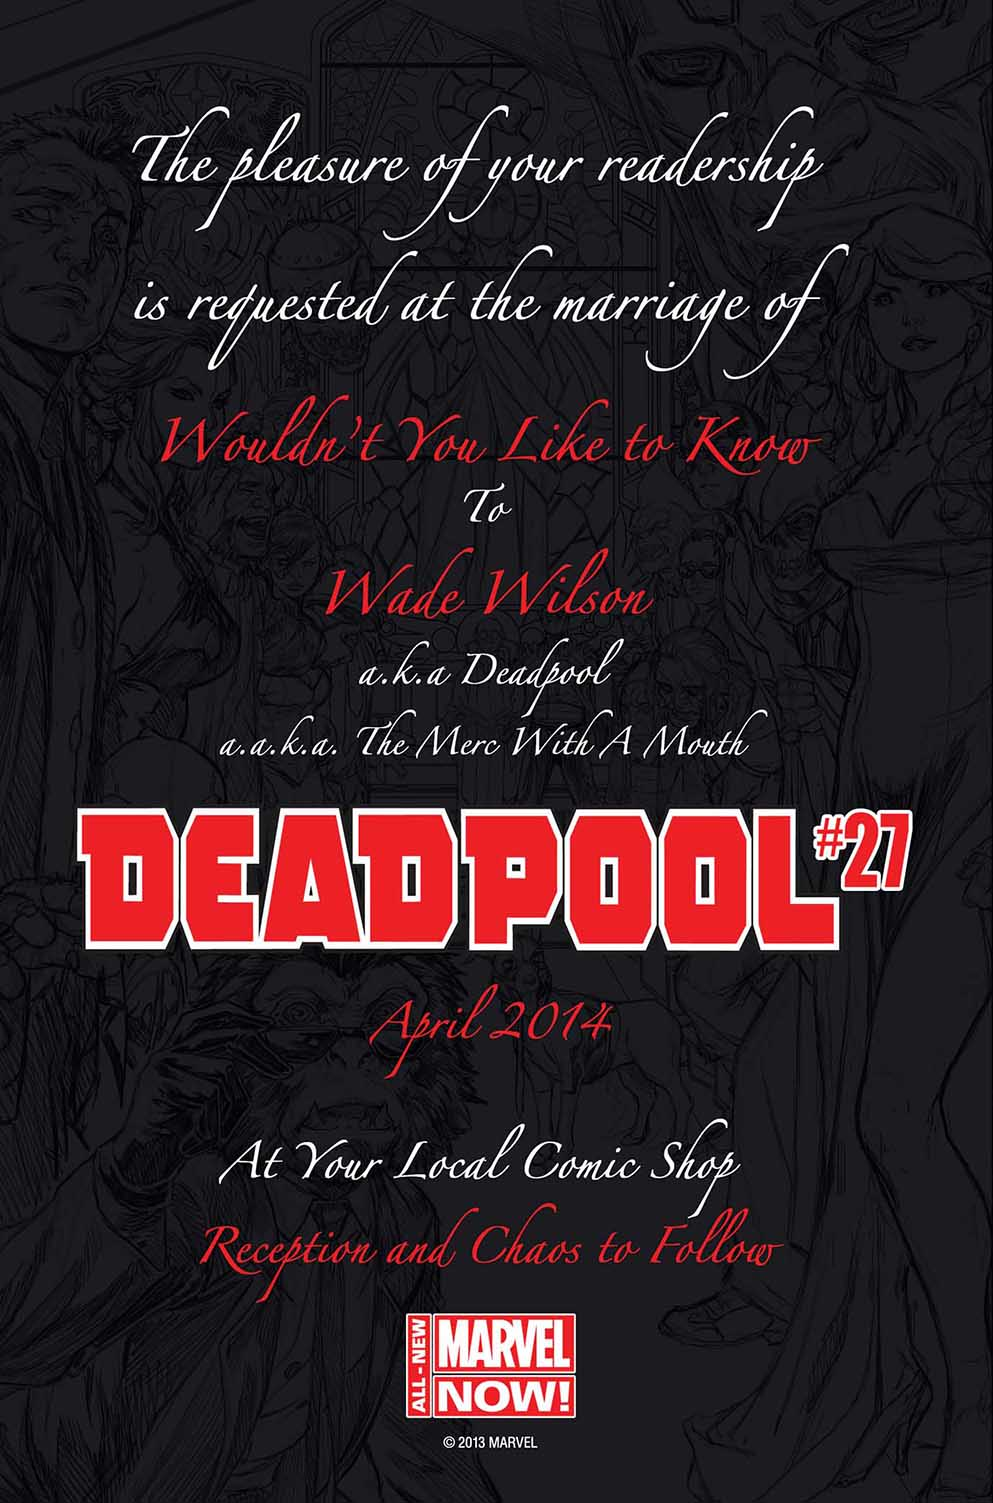 Marvel Invites You To Deadpool\'s Wedding This April! - Bloody Disgusting